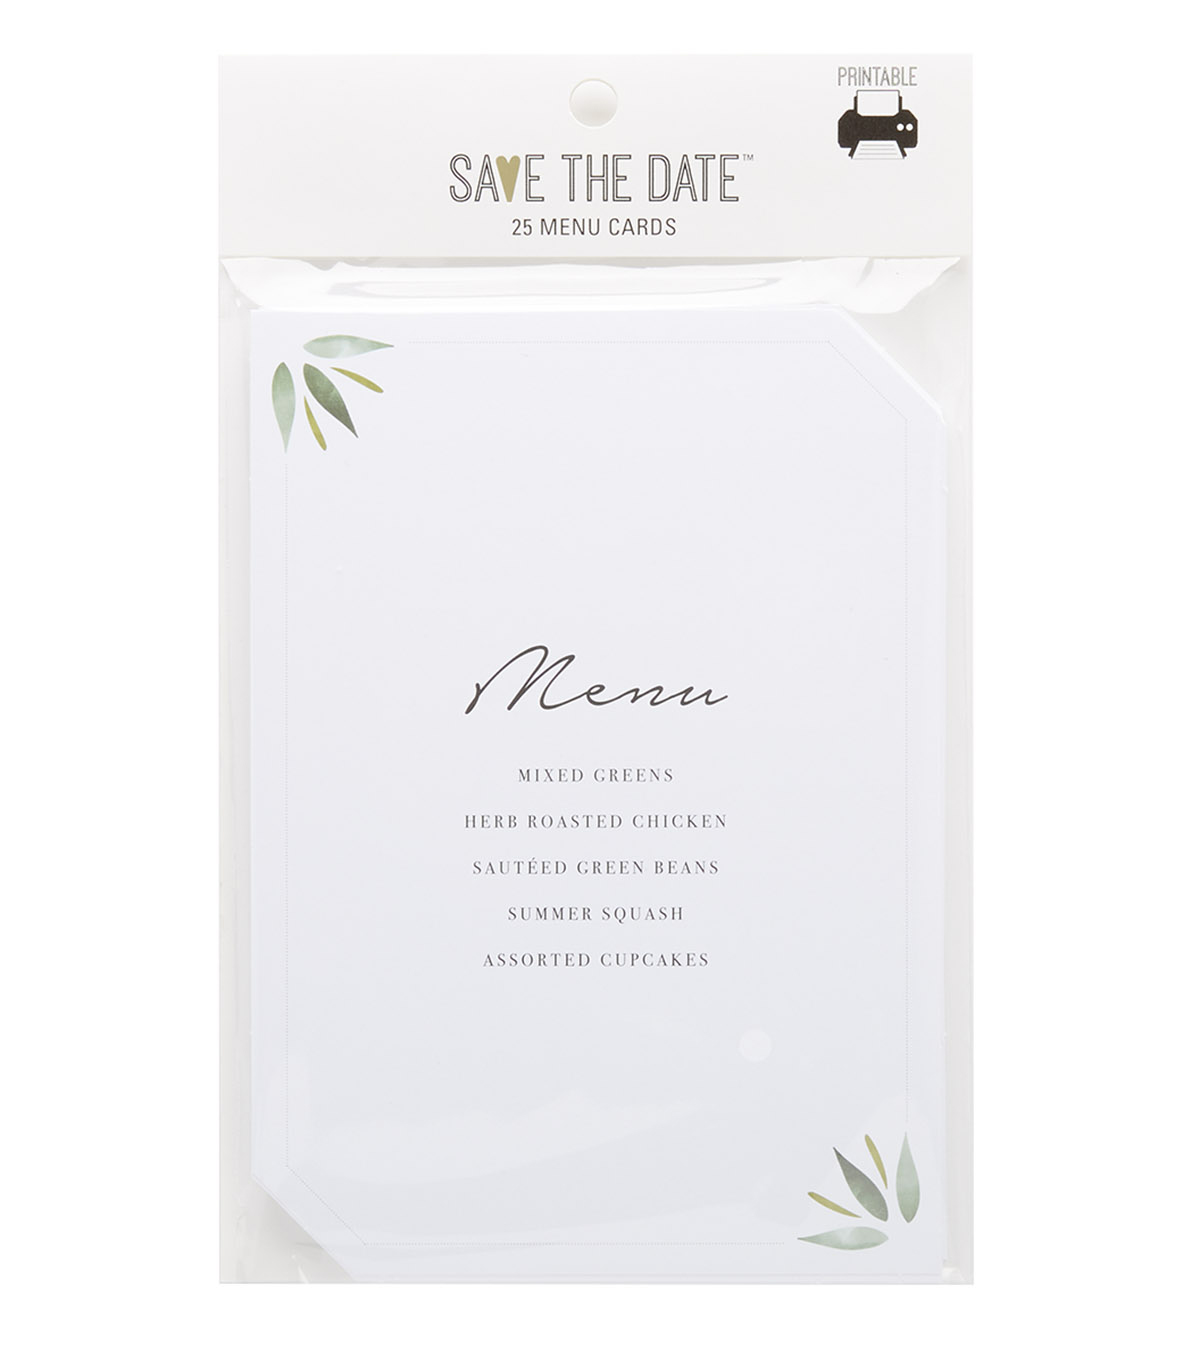 Greenery Menu Cards 25ct